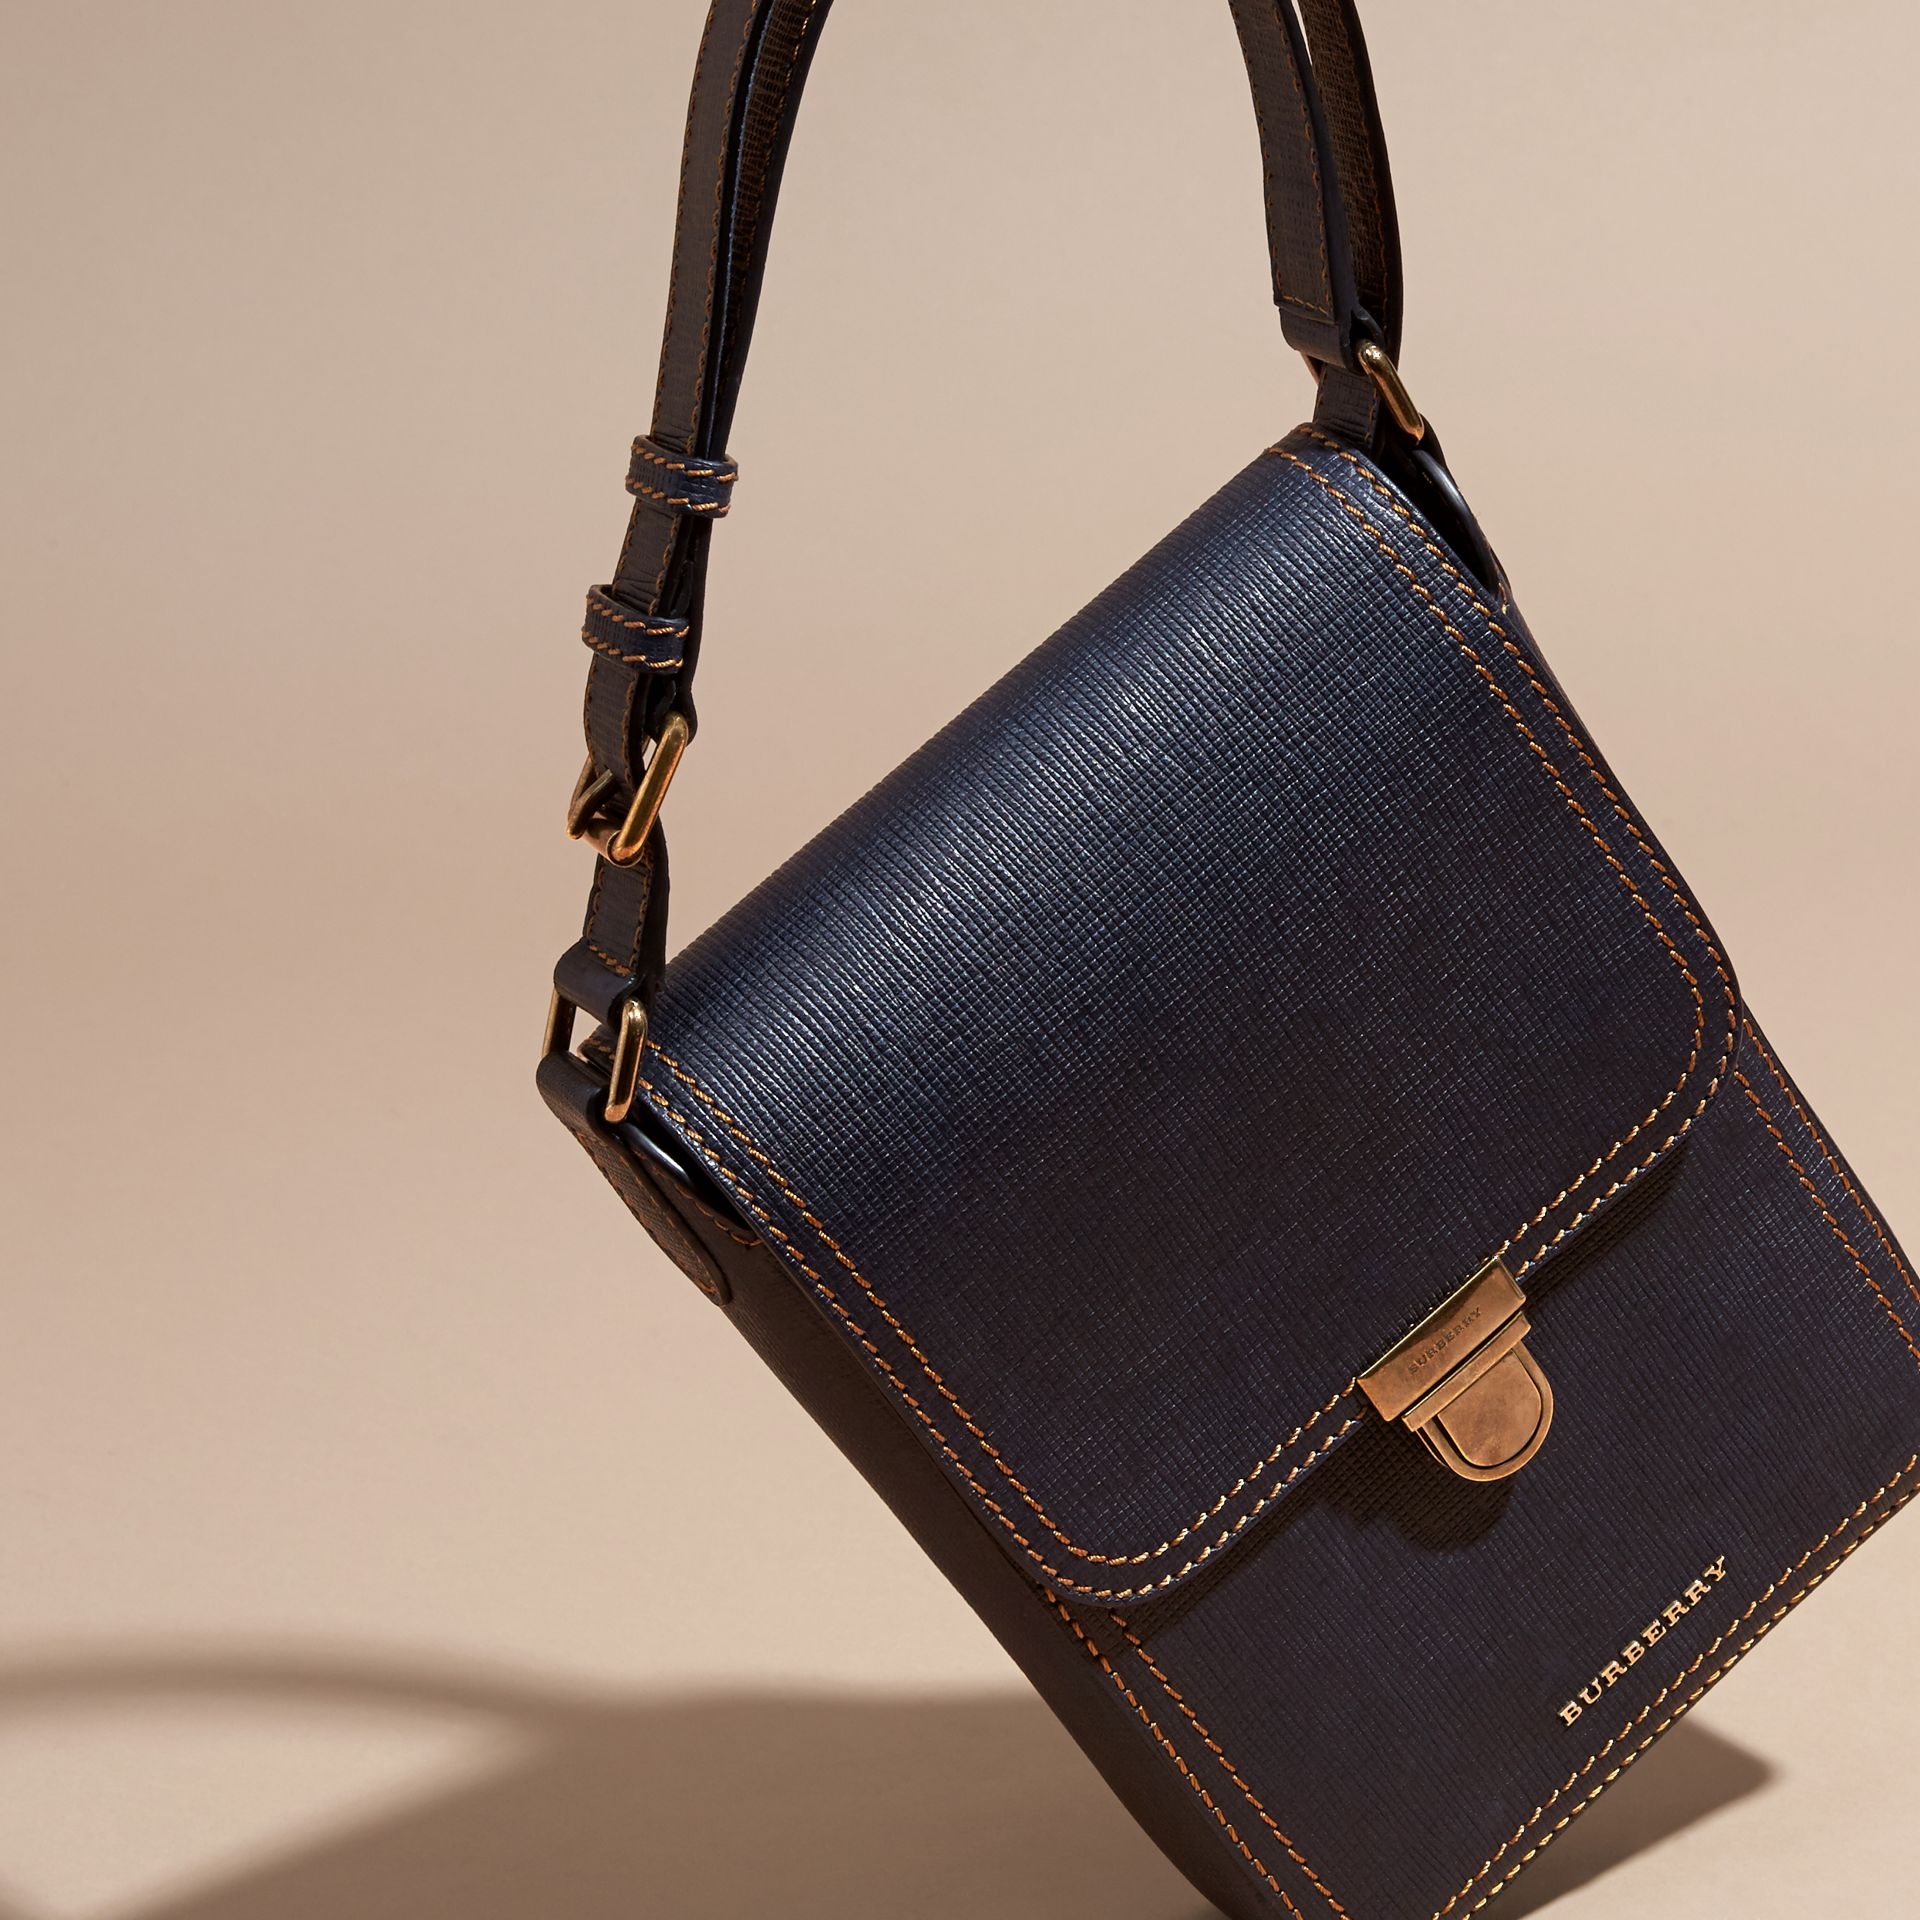 Dark navy The Small Satchel in Textured Leather - gallery image 7